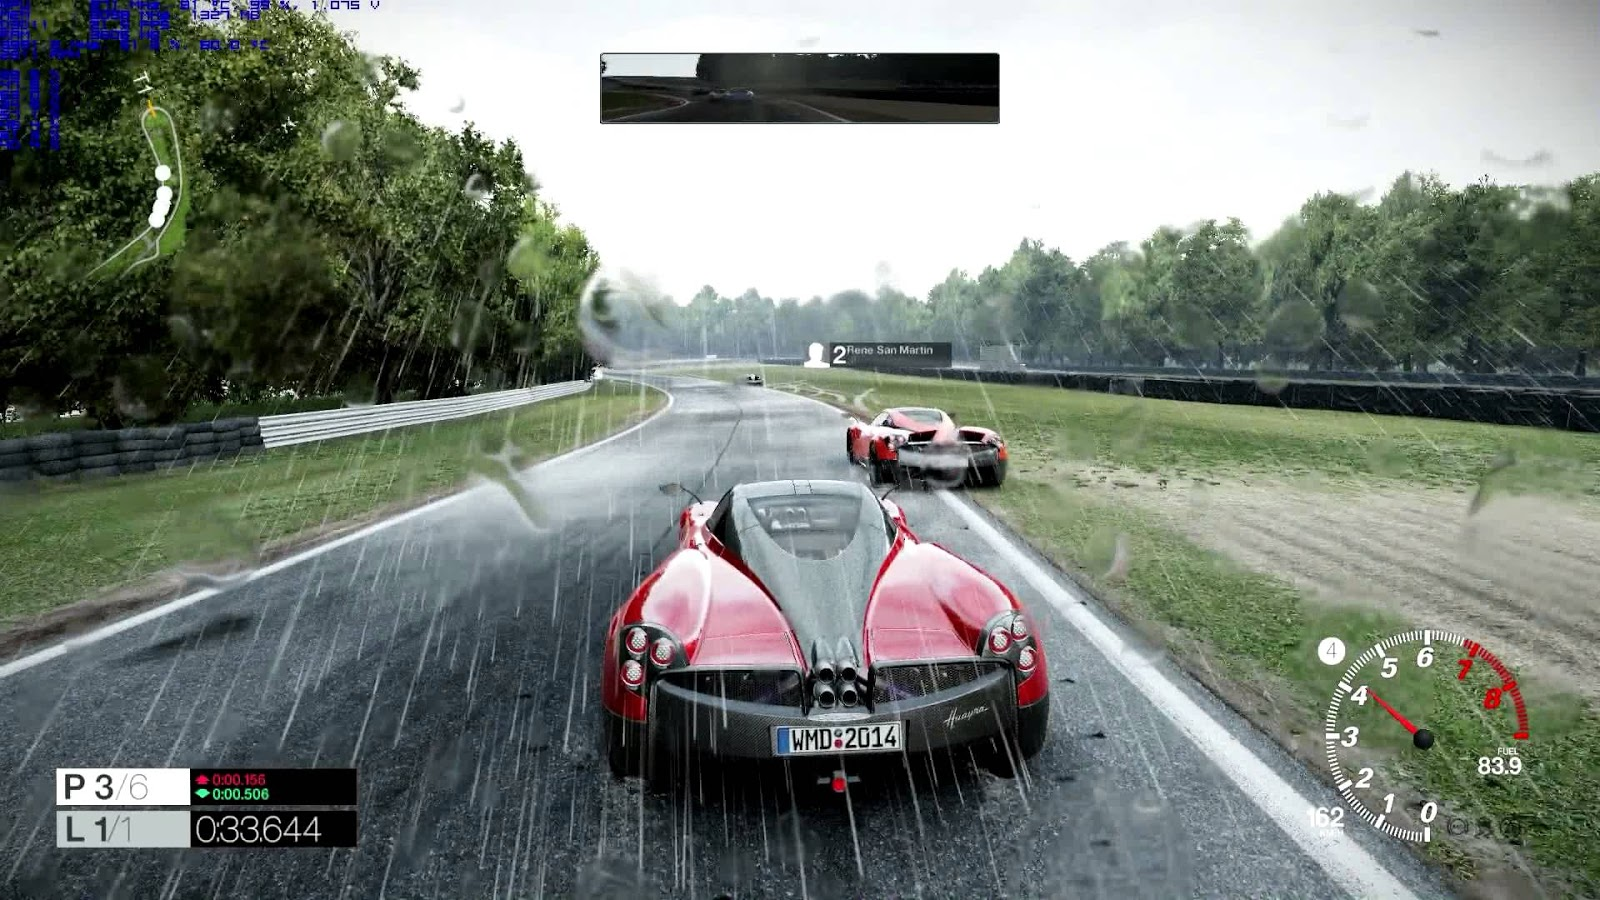 QCCSA - Project CARS PC full game + DLC